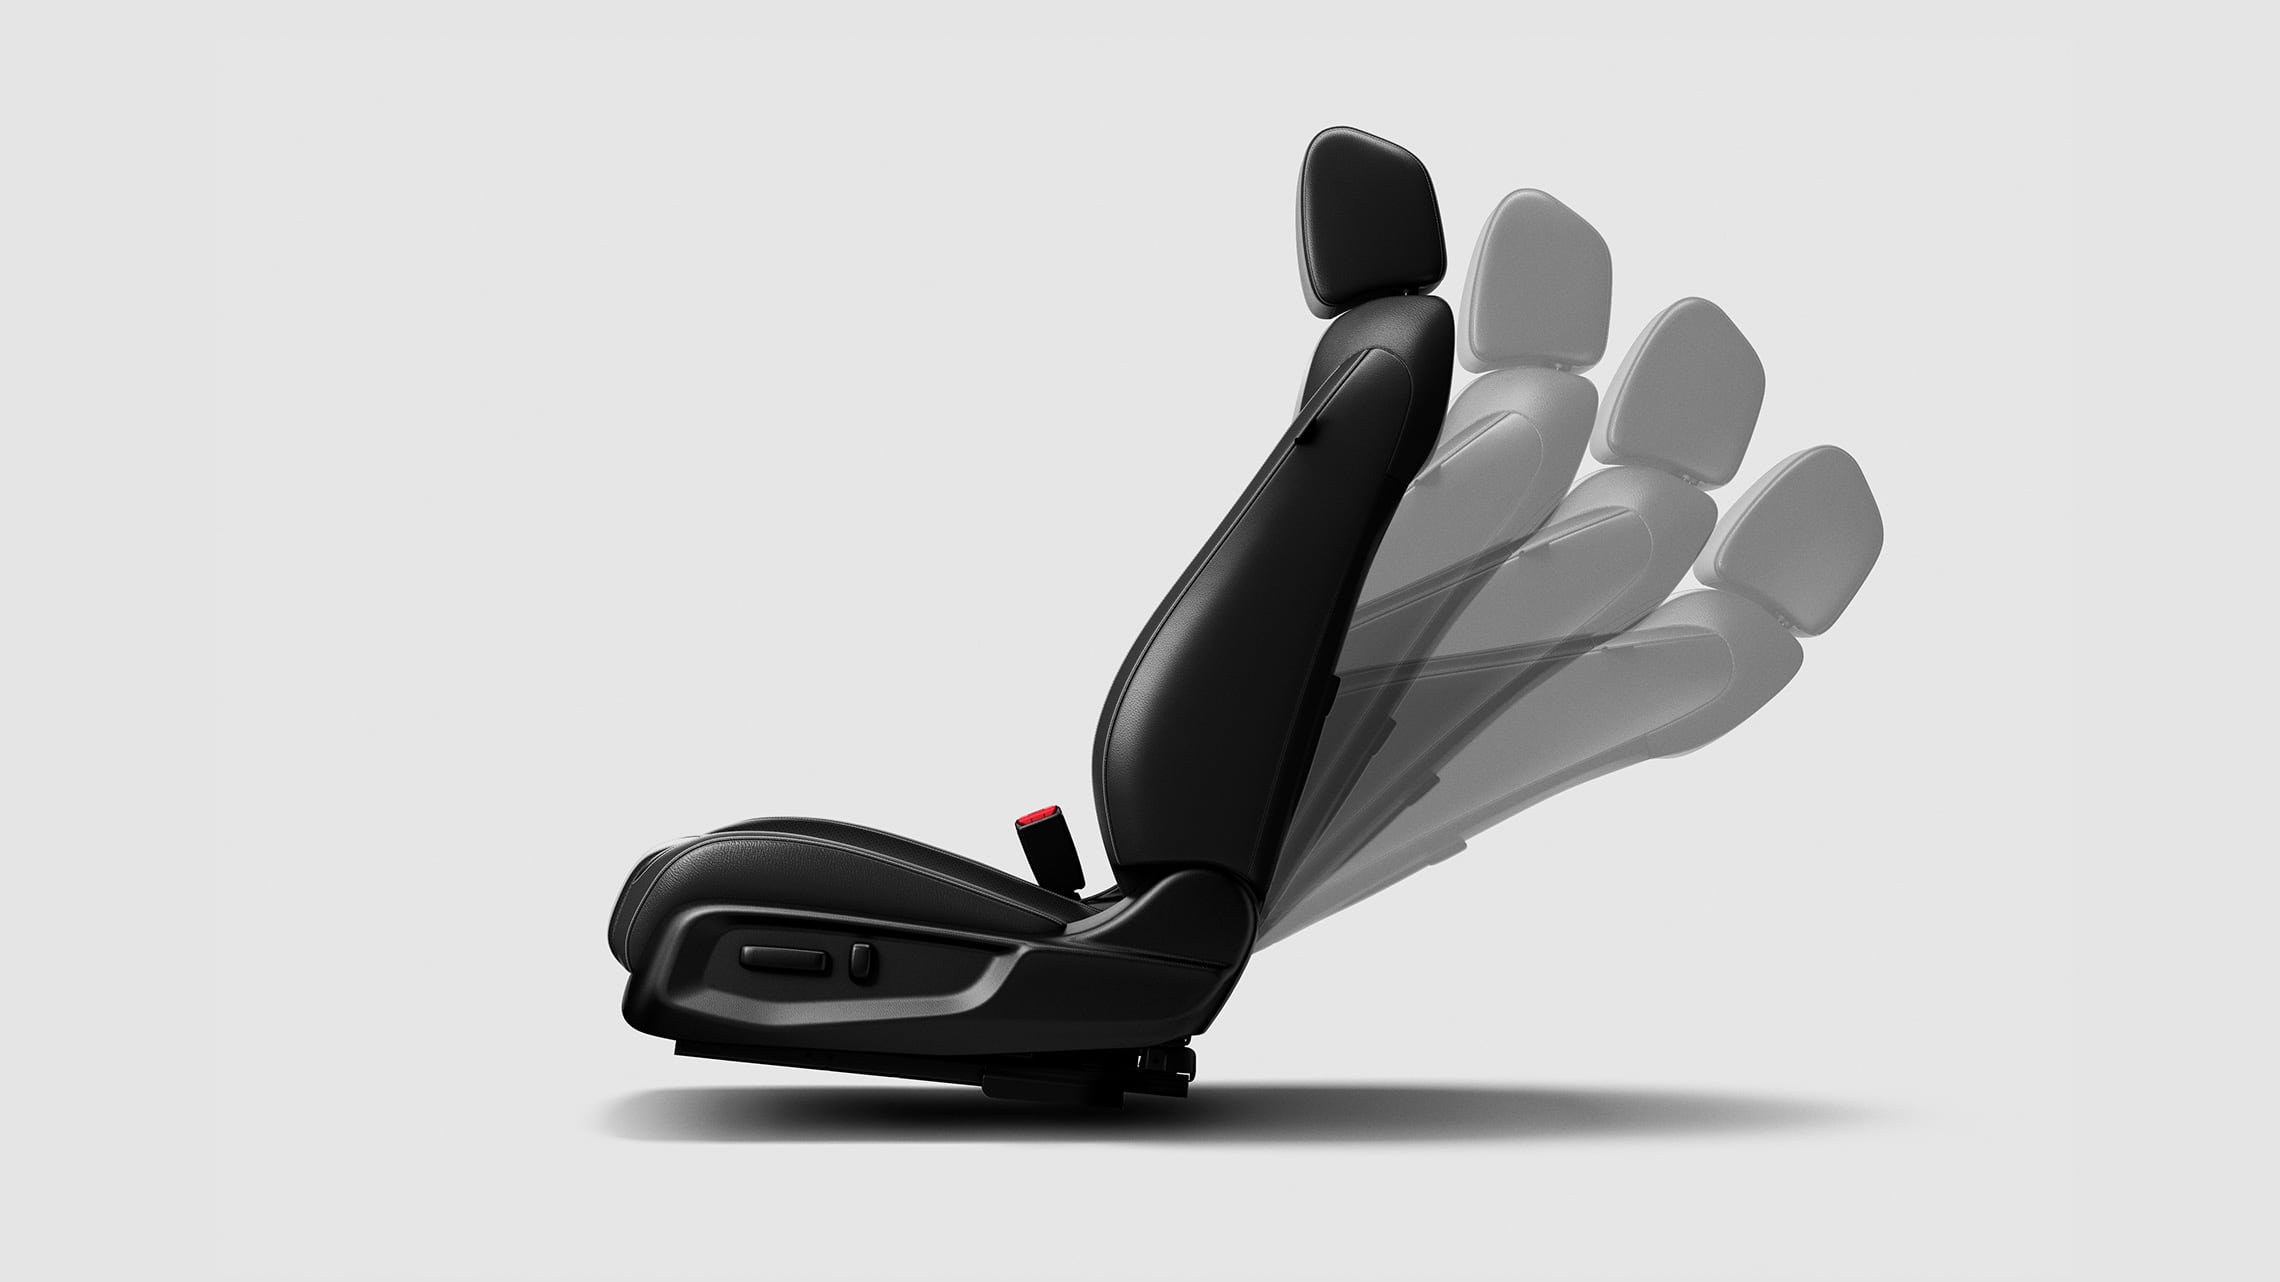 Detail of 8-way power-adjustable driver's seat, in various position settings, for the 2021 Honda Civic Touring Sedan.